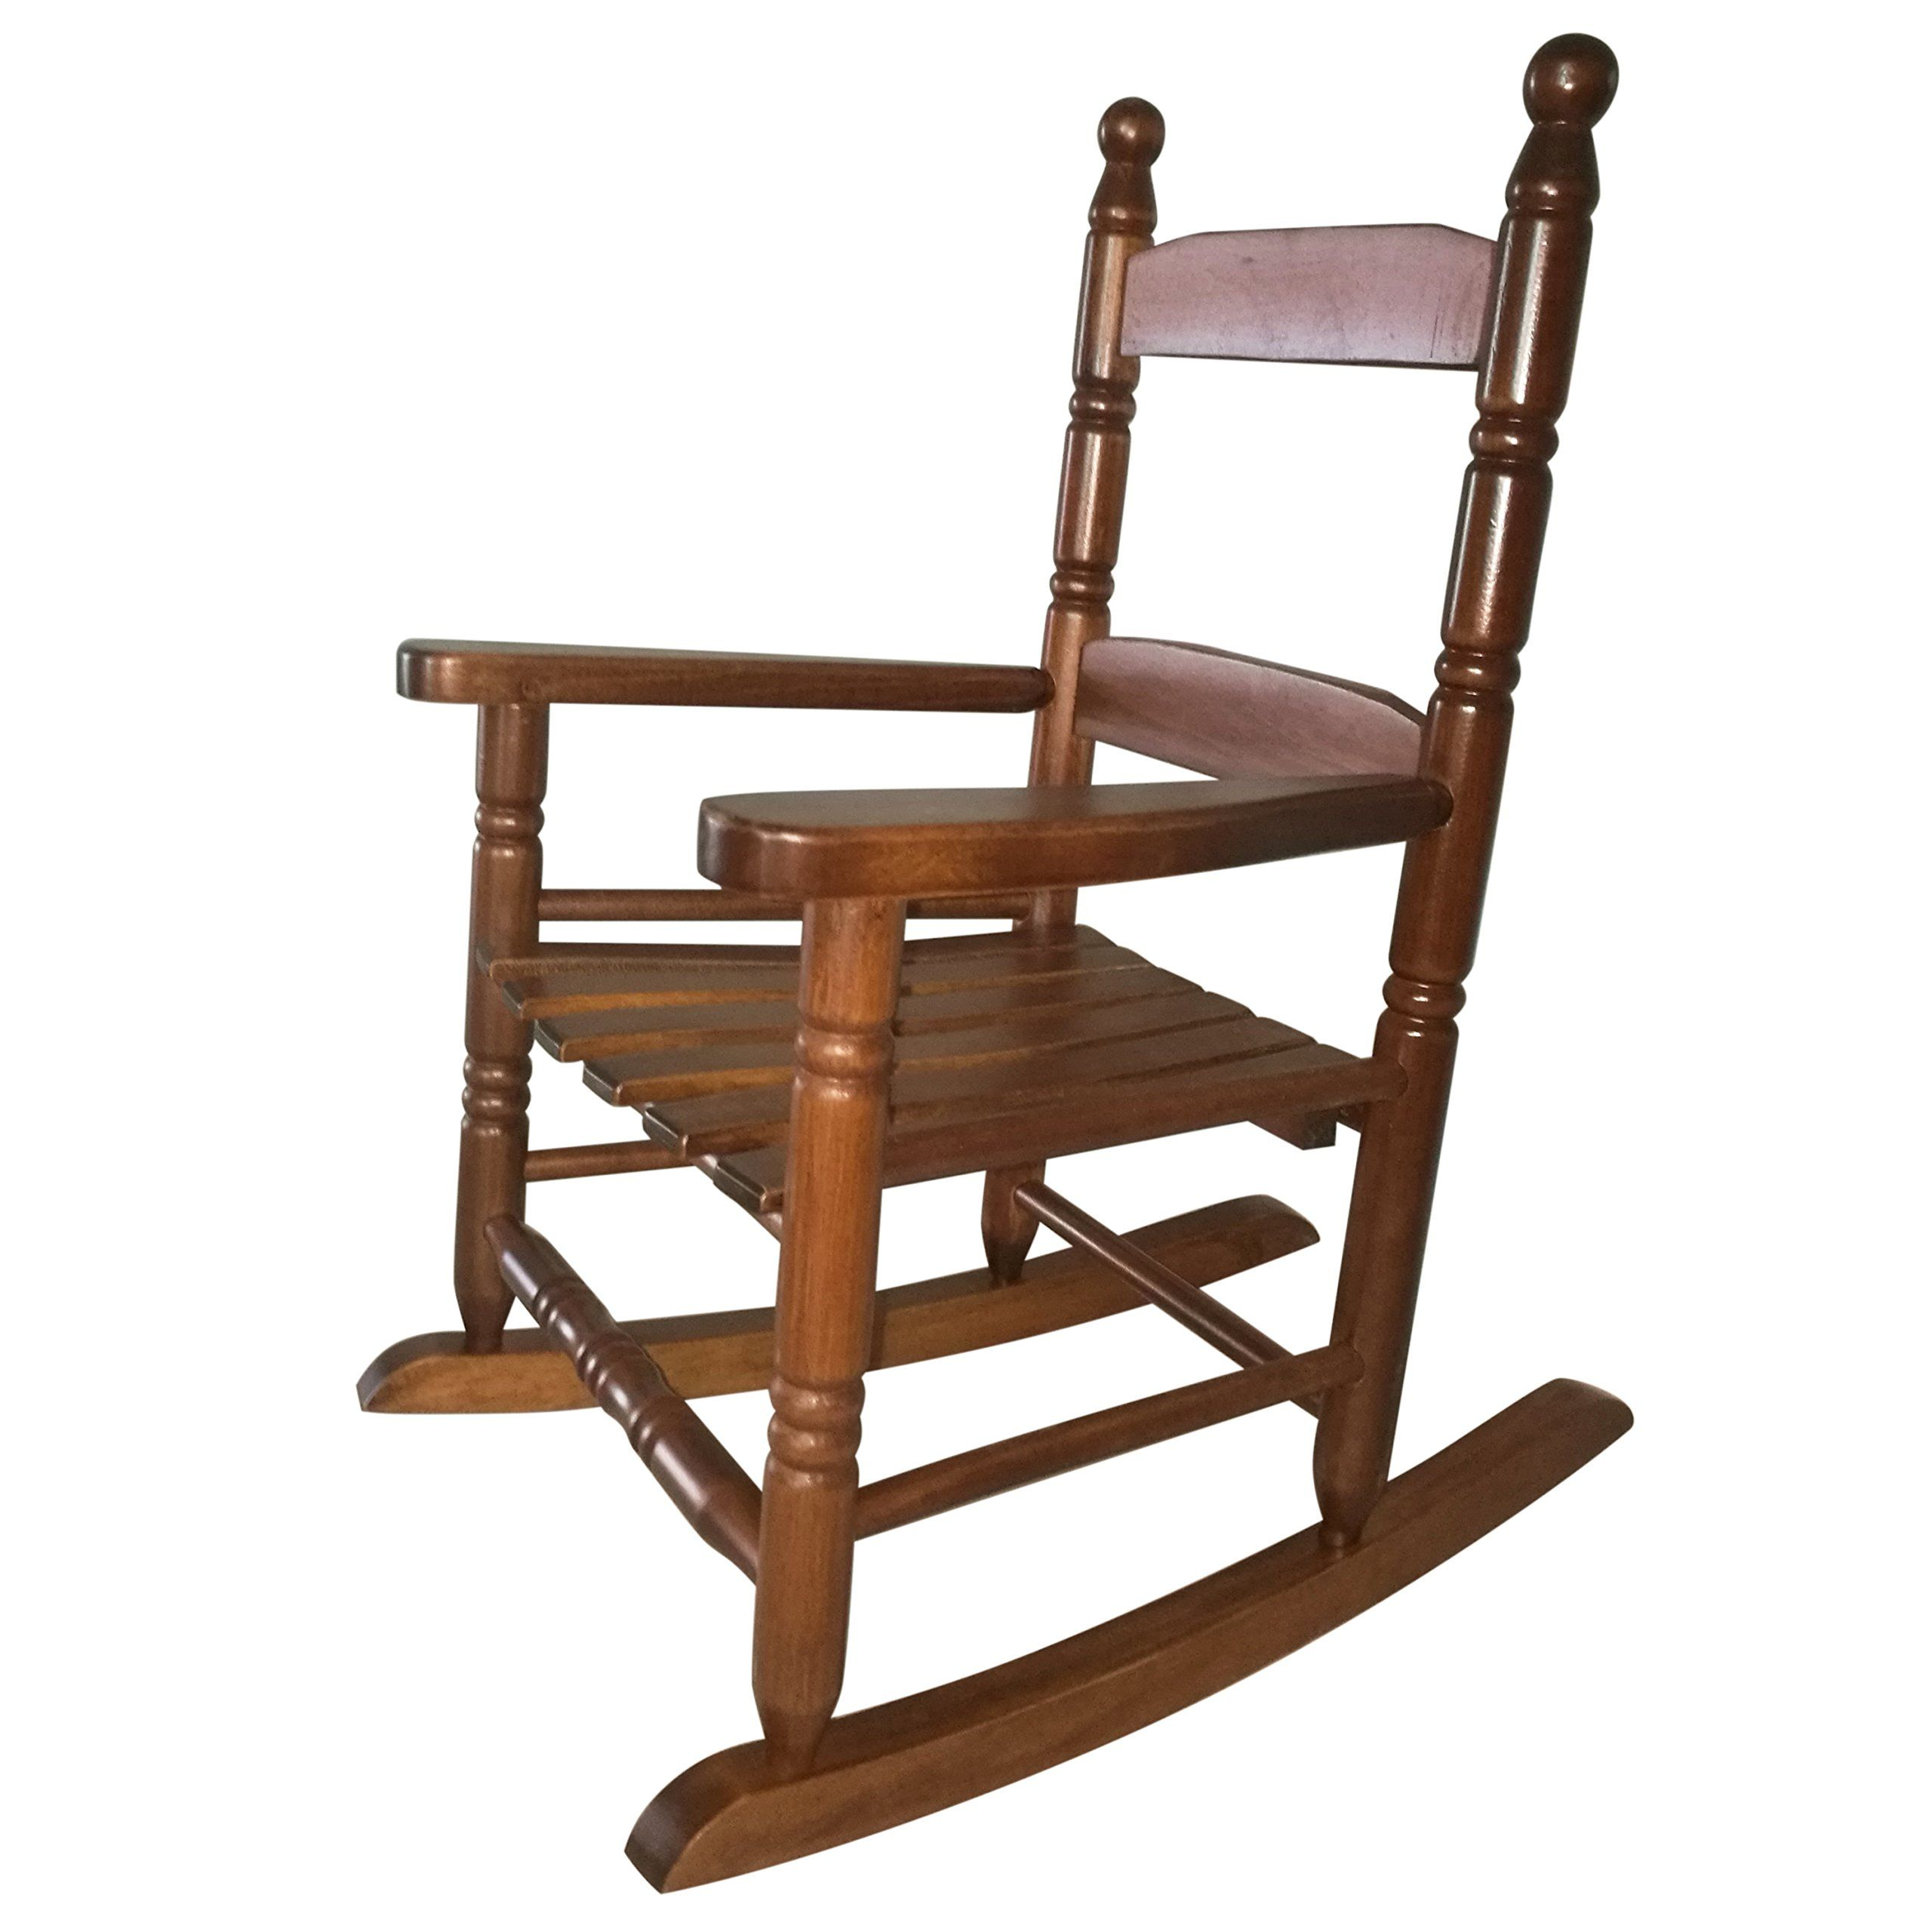 Rockingrocker K10NT Natural Wood Child's Rocking Chair